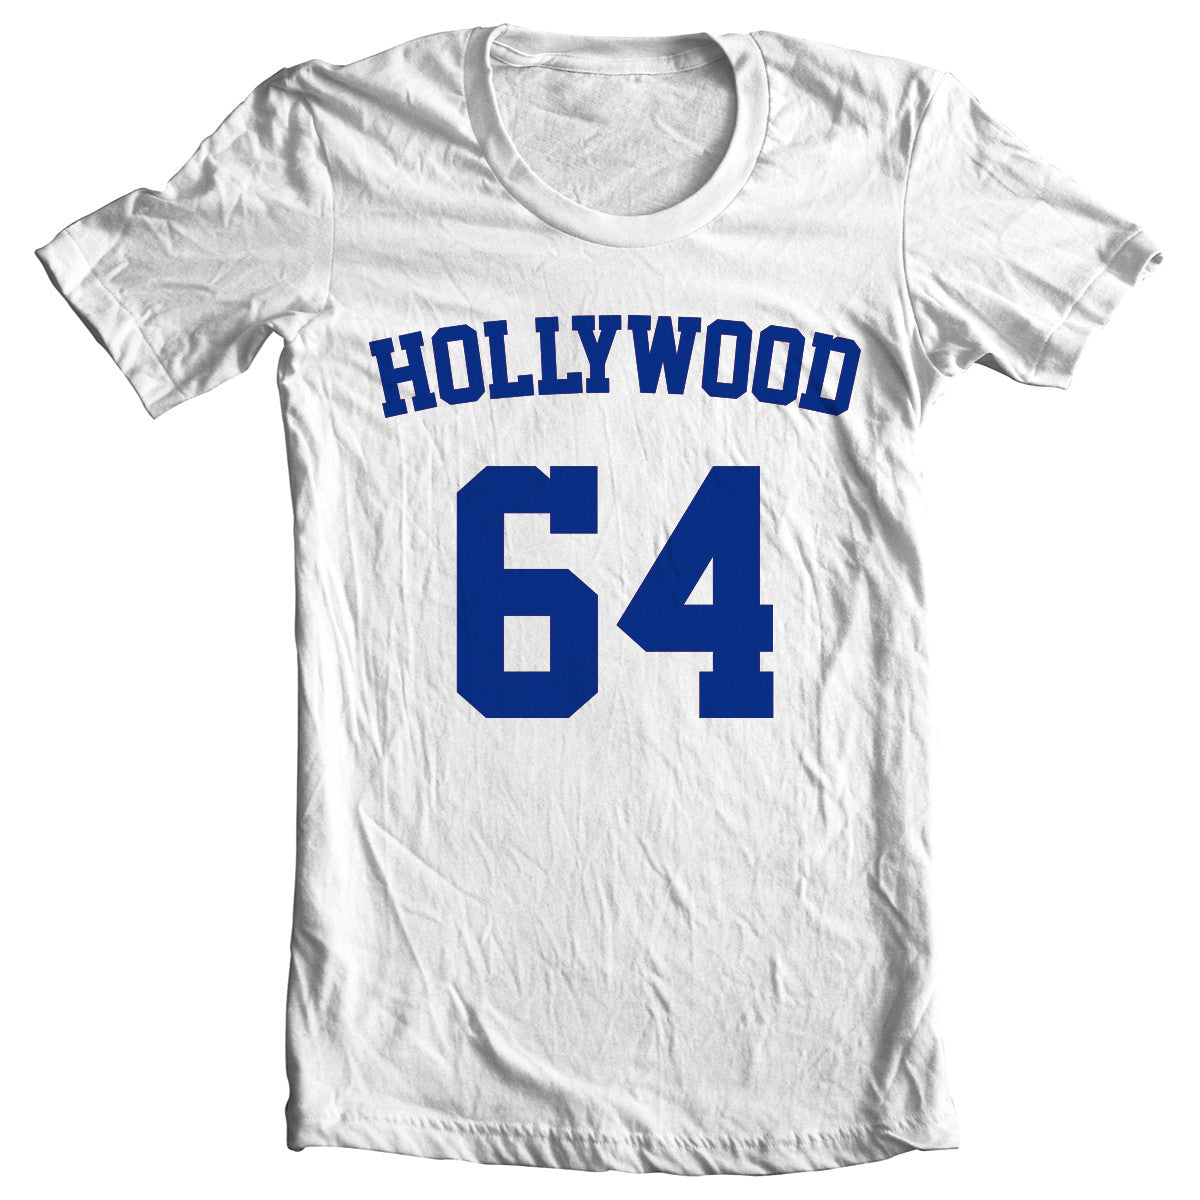 Hollywood 64 Jersey